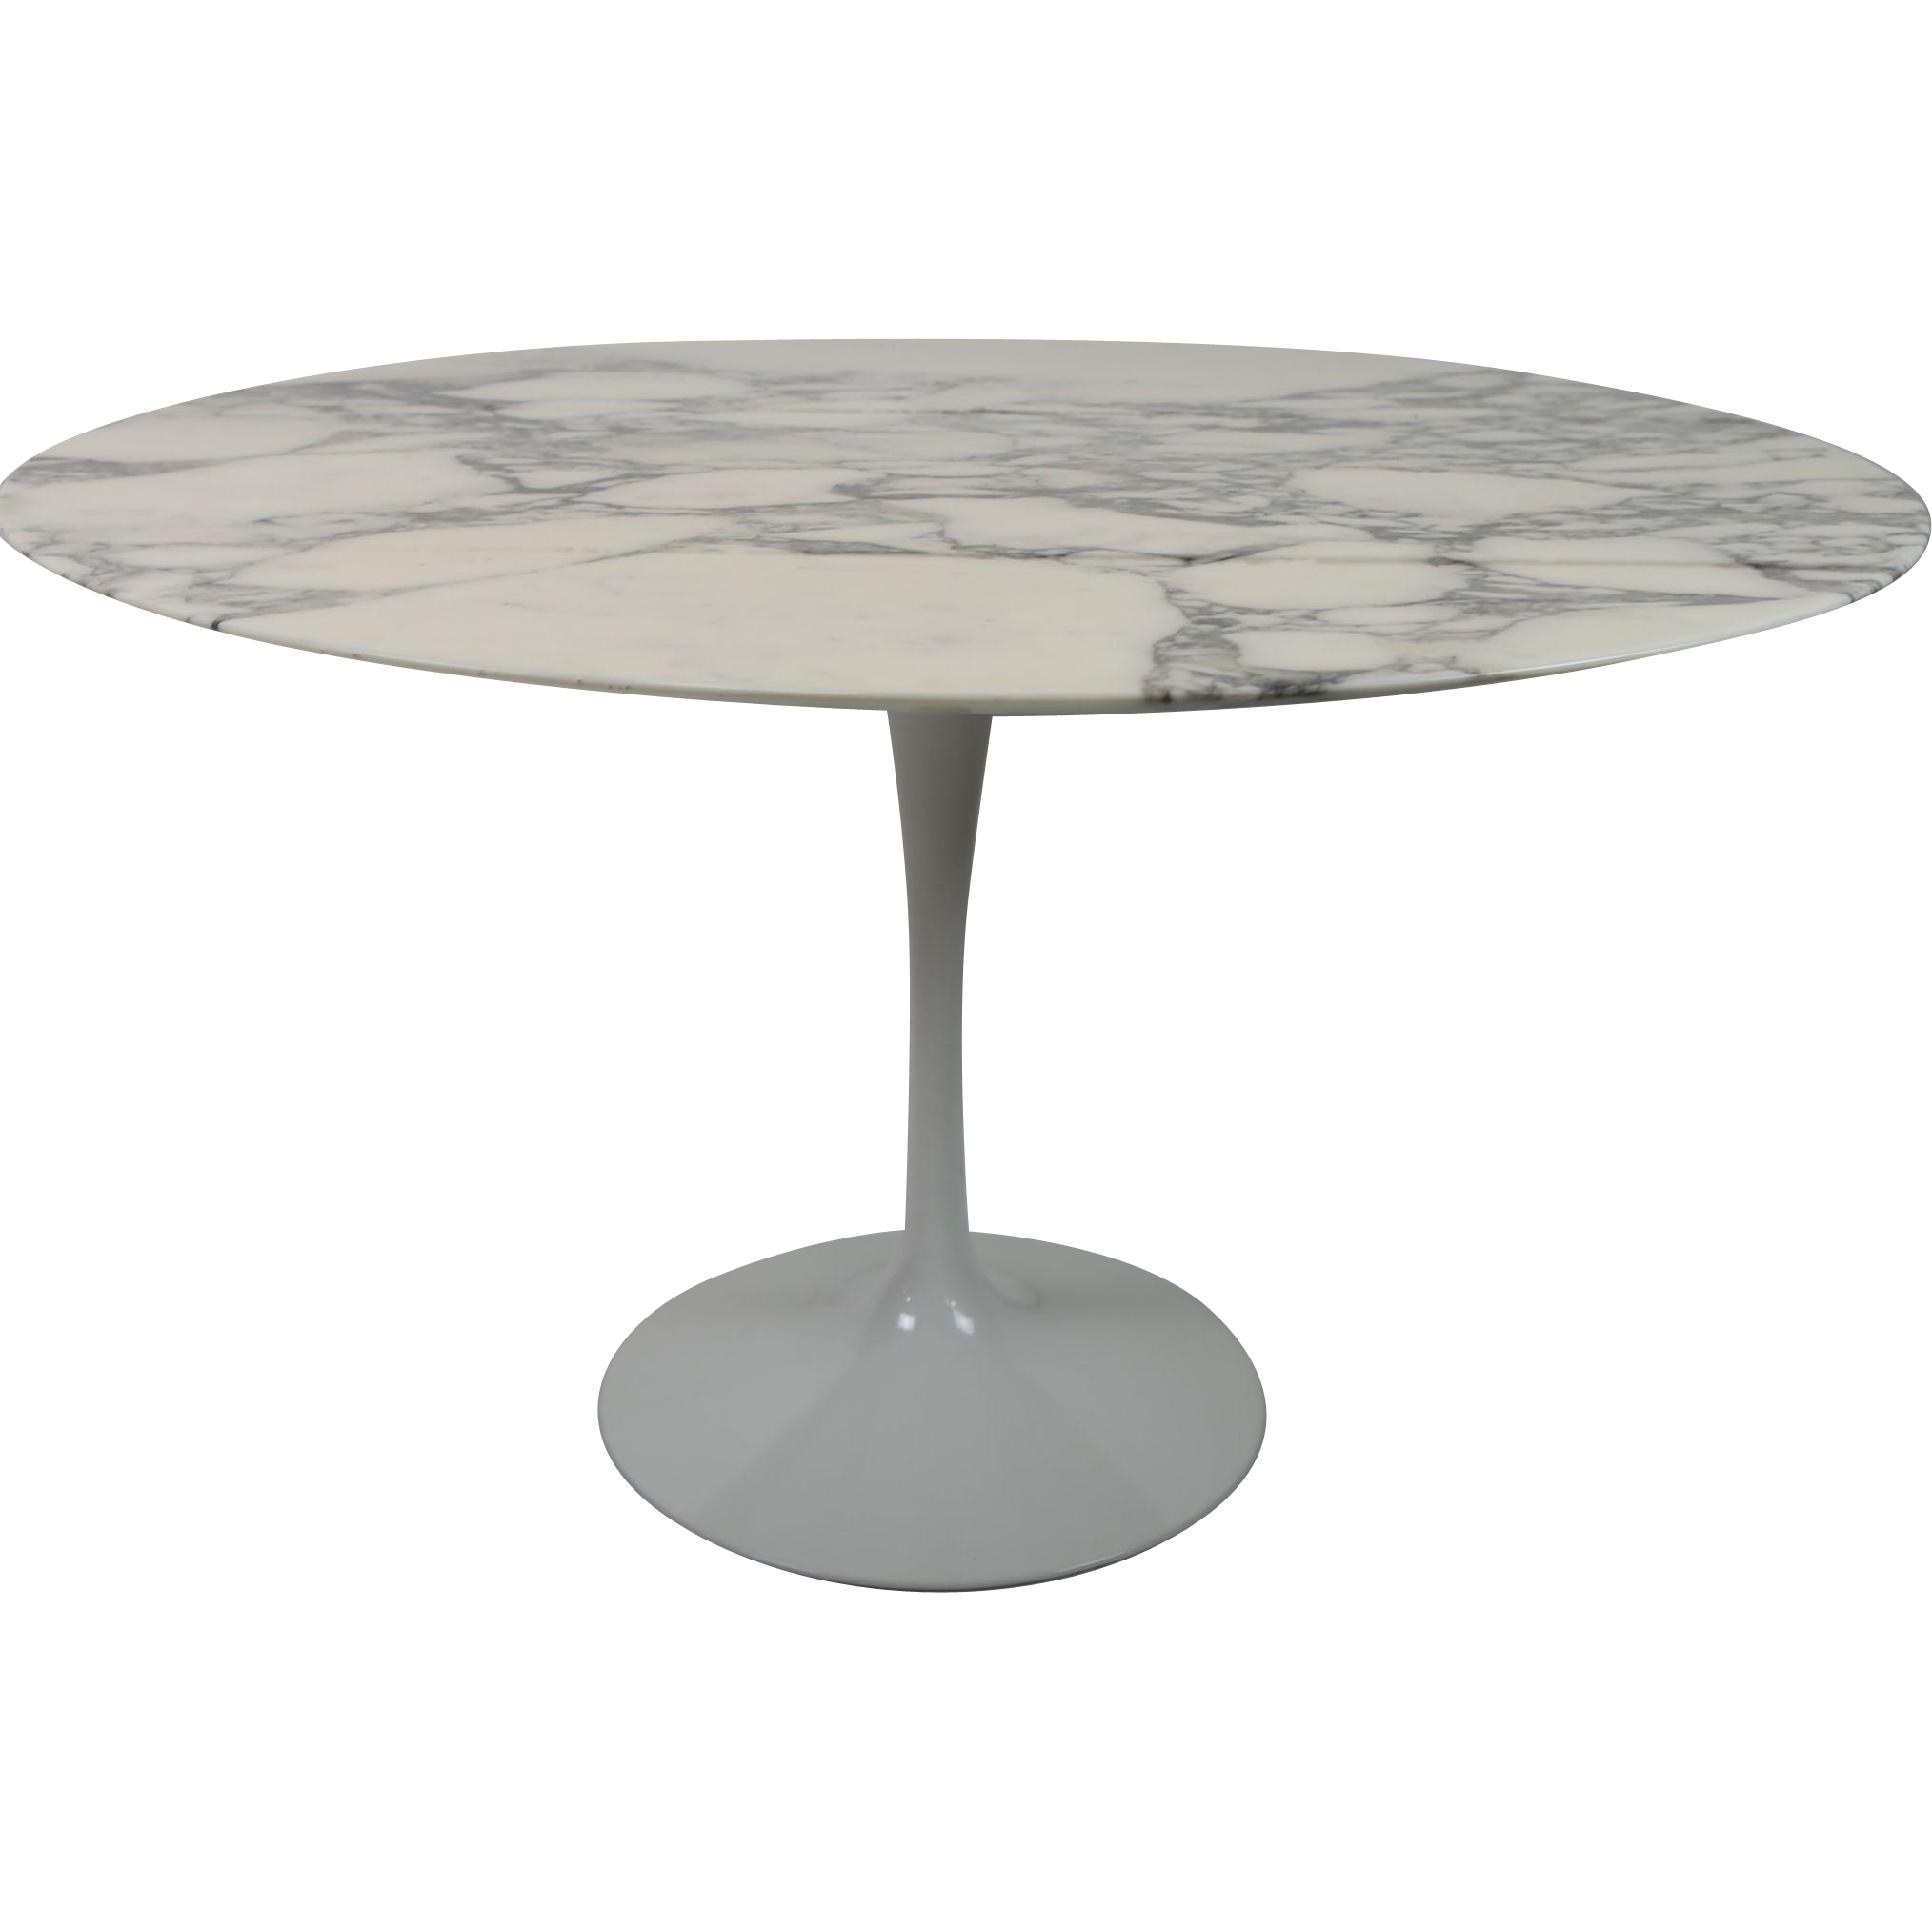 Carrara Marble Top Tulip Base Dining Table by Eero Saarinen for